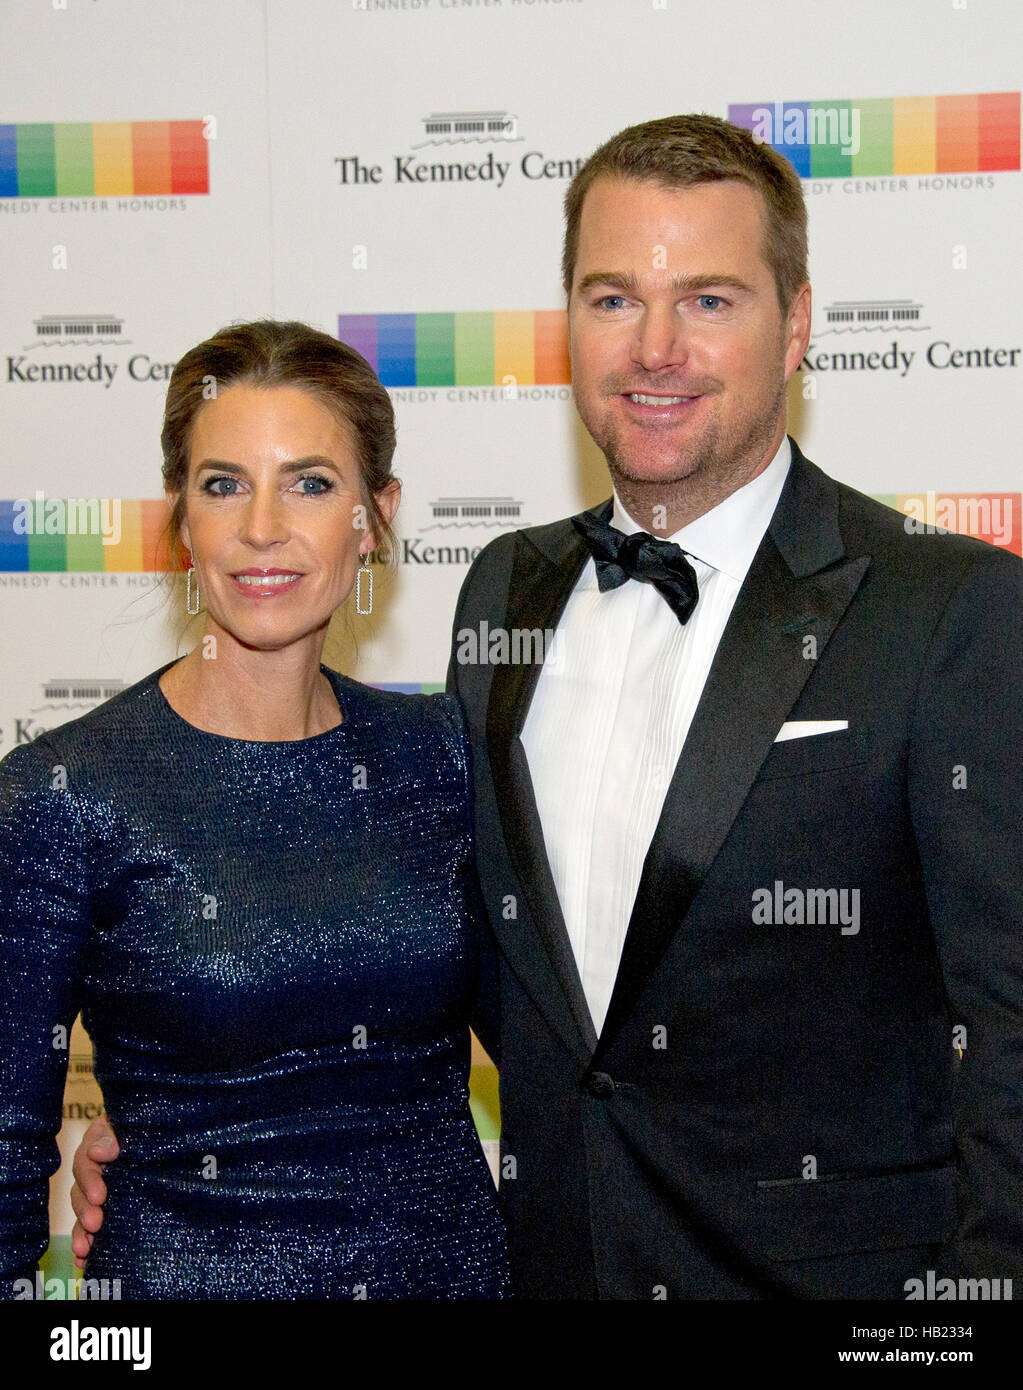 Chris O'Donnell and his wife, Caroline Fentress, arrive for the formal Artist's Dinner honoring the recipients - Stock Image